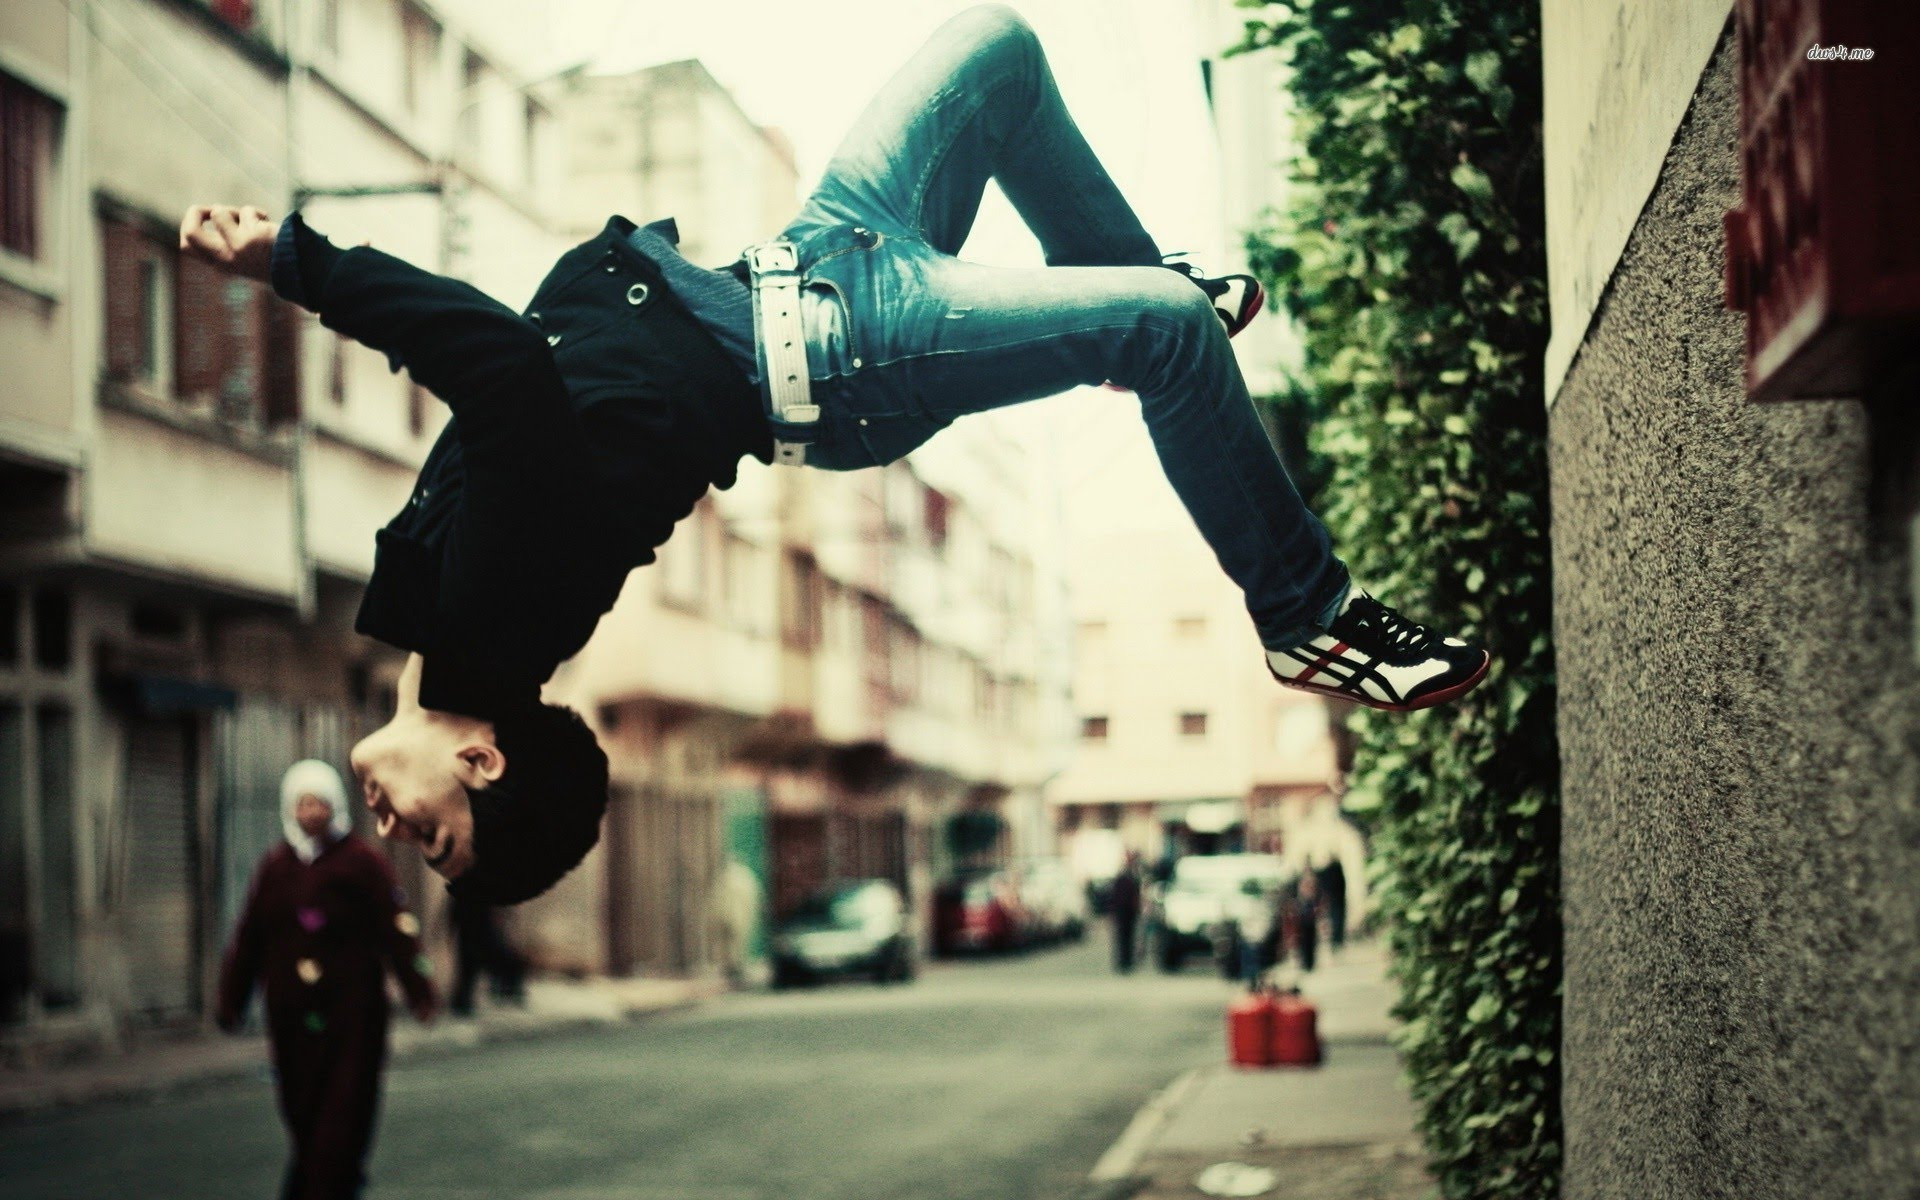 parkour-move-performed-in-shoes